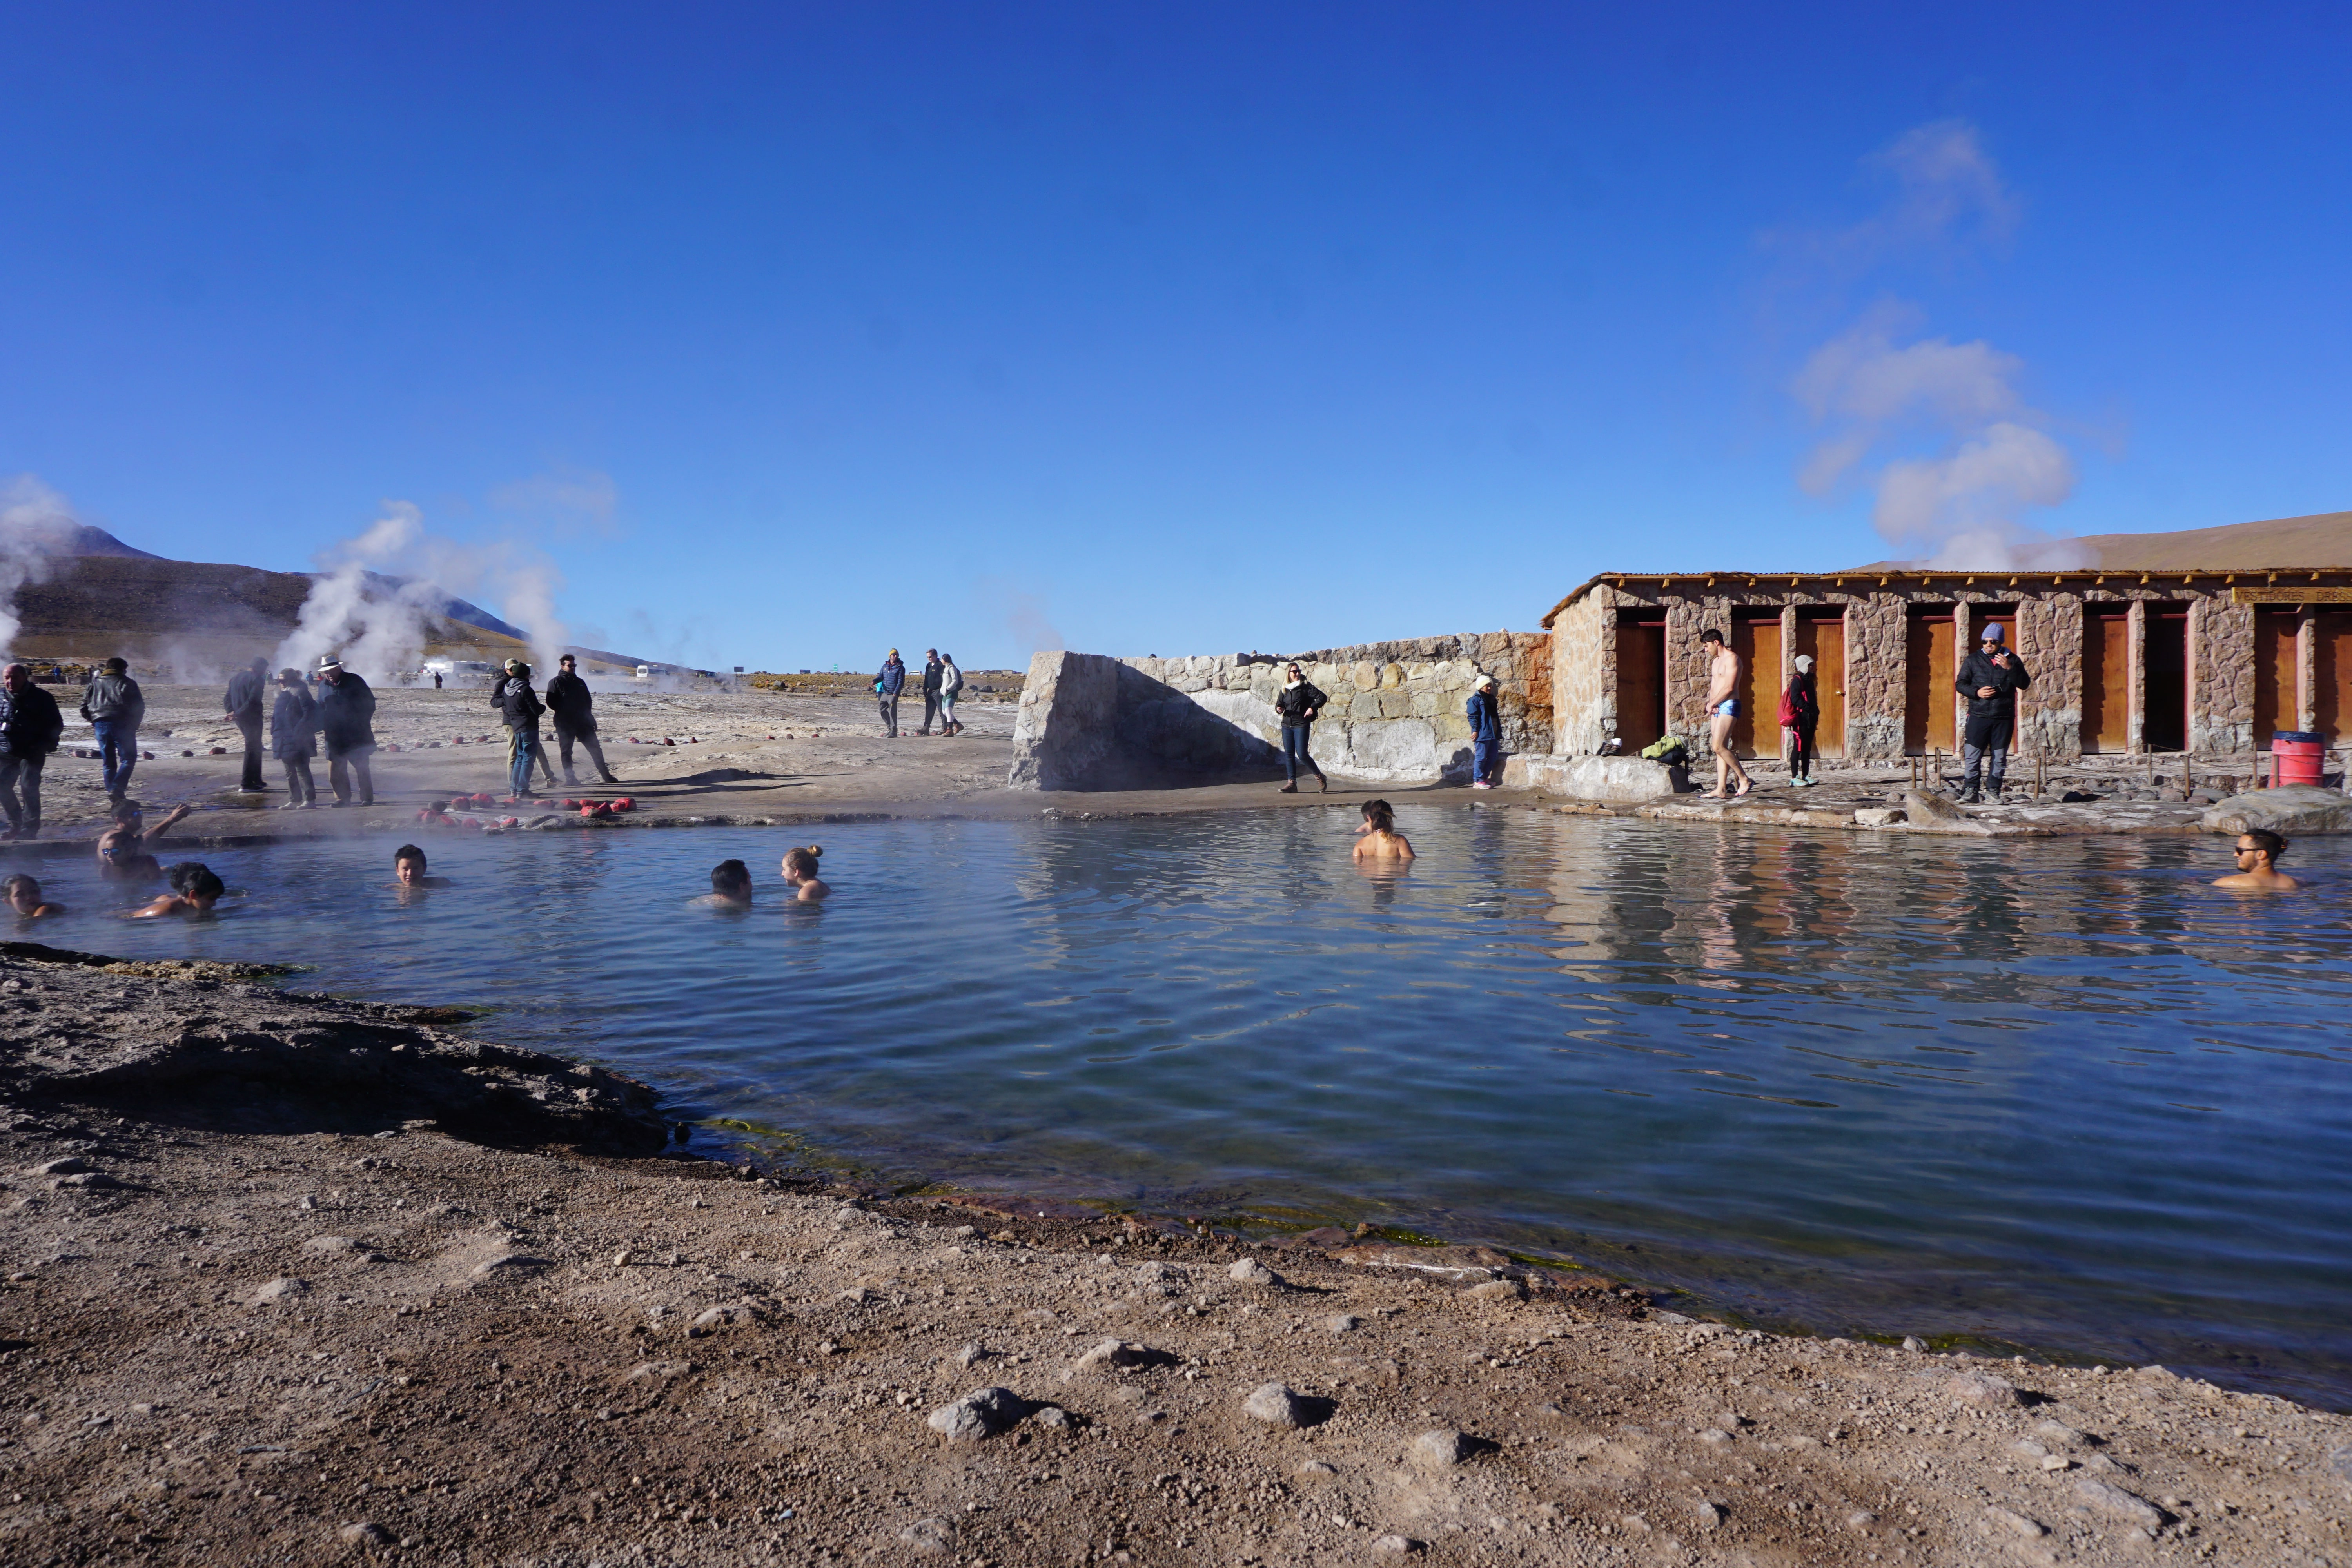 Geyser del Tatio bezoeken - backpacken in Chili